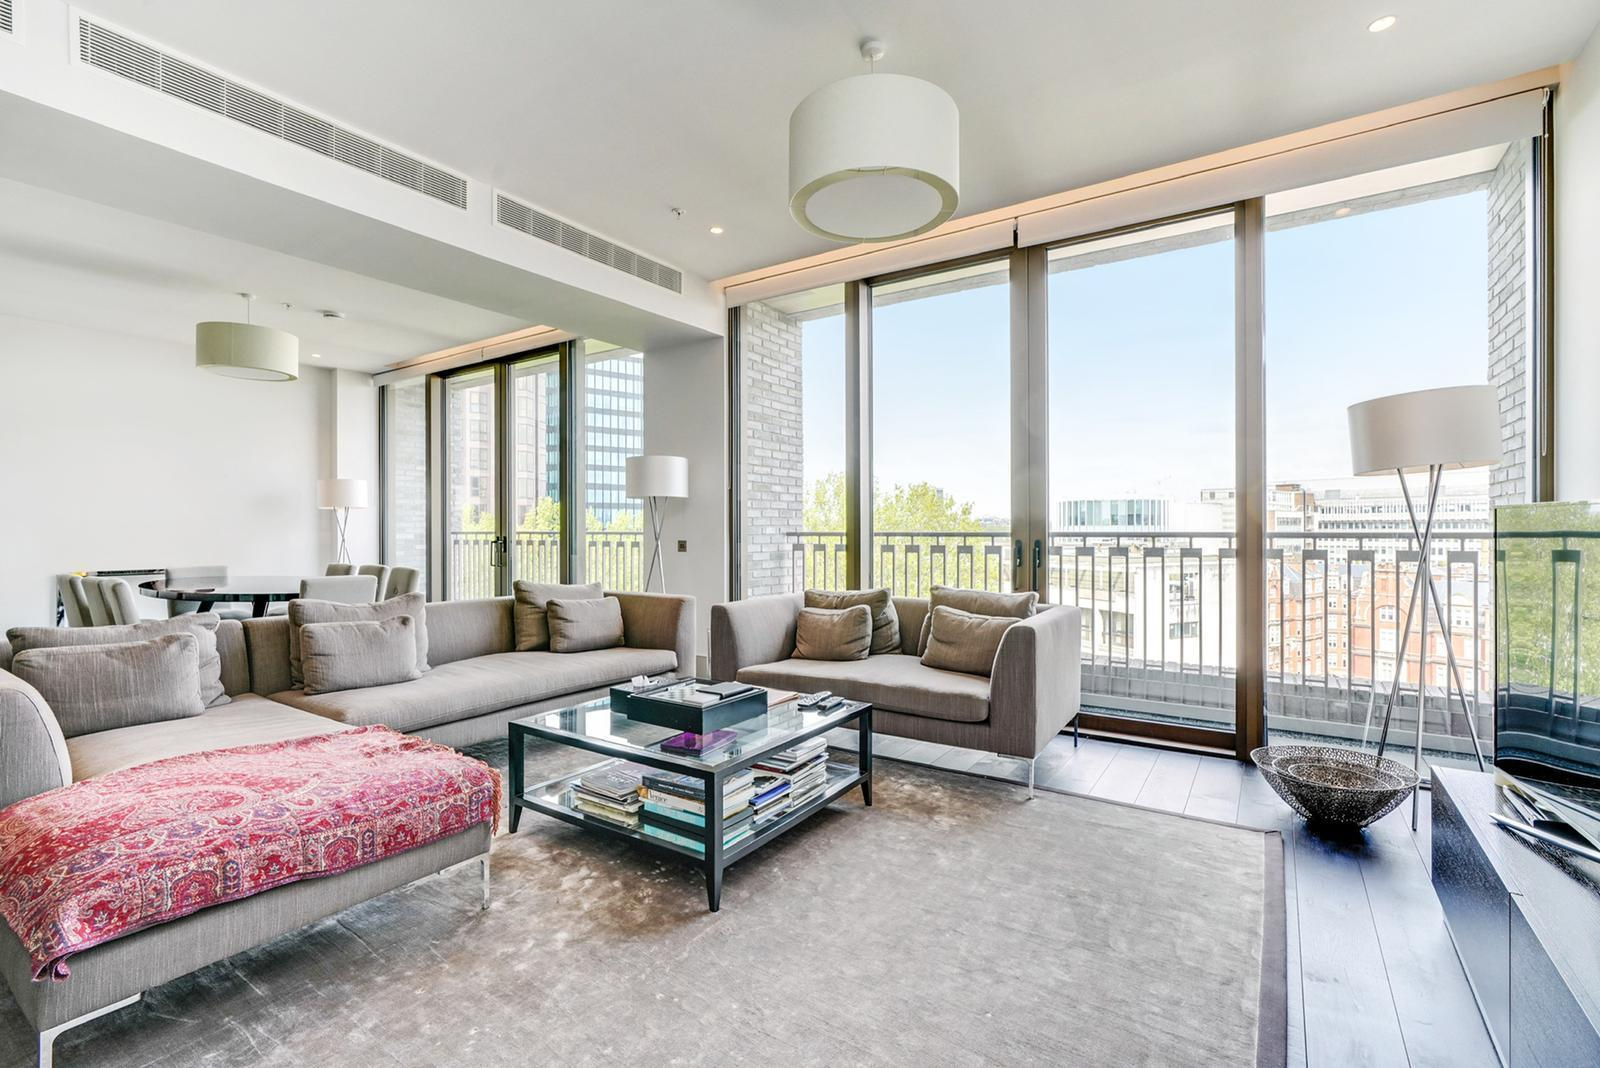 Ultra luxury penthouse with the views over London